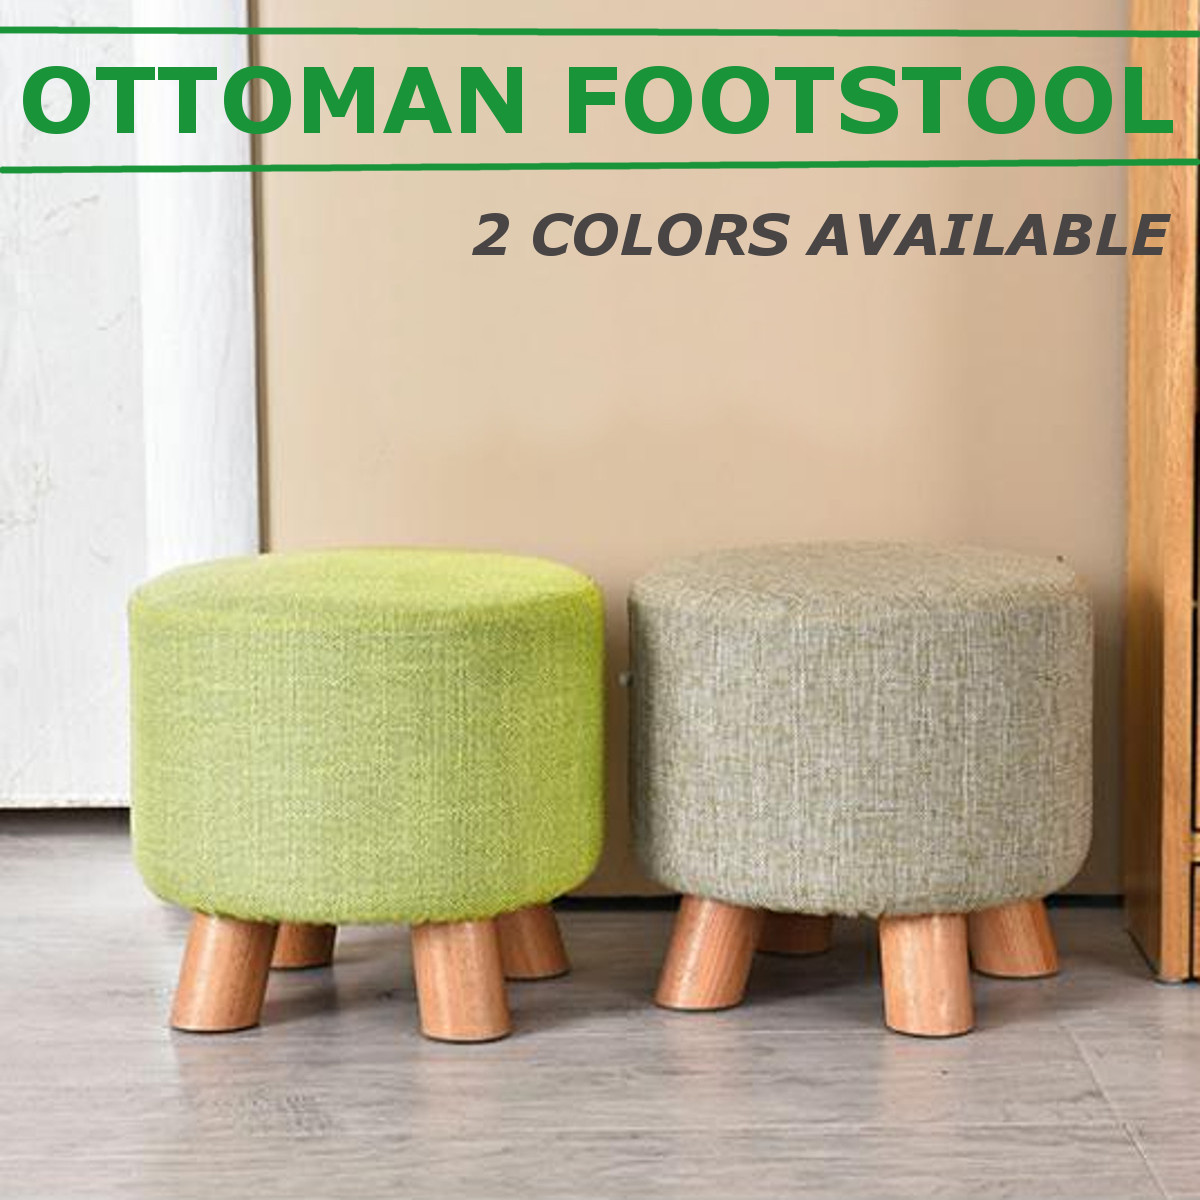 Living Room Luxury Upholstered Footstool Nordic Round Pouffe Stool Wooden Leg Pattern Round Fabric With 4 Legs